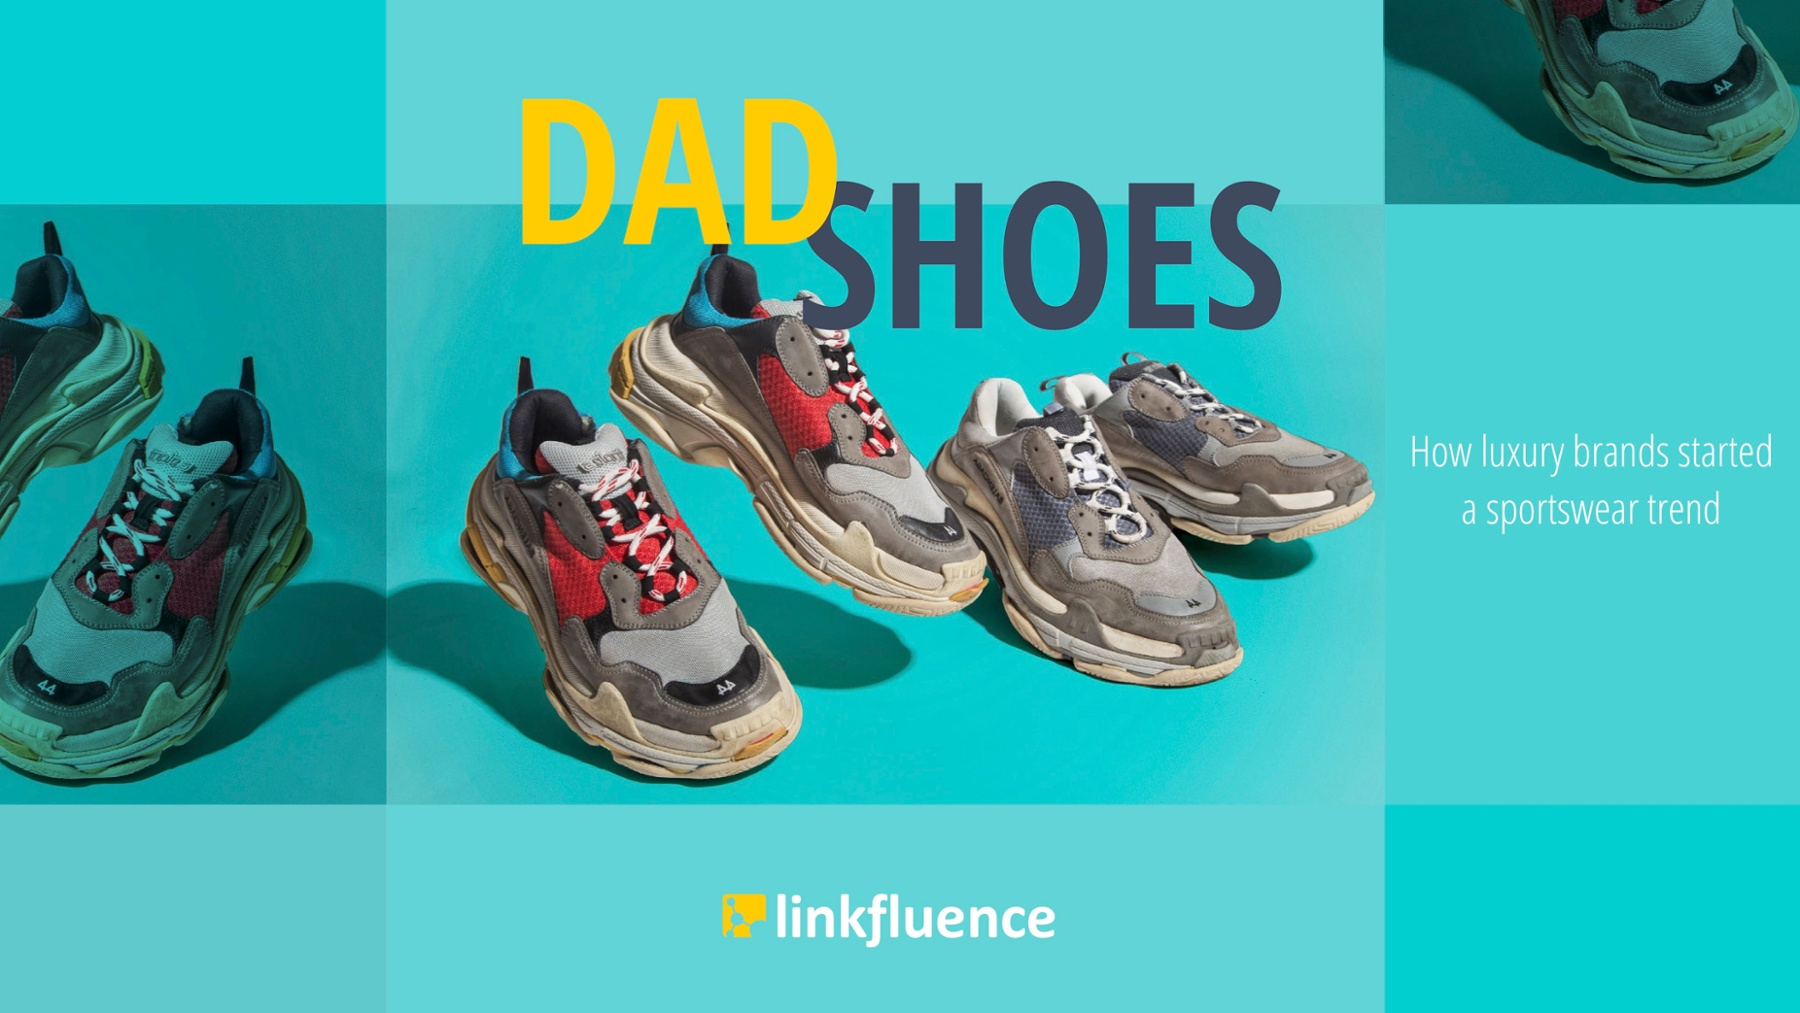 0e7cc8ed Fashion Trend Analysis: How the Dad Shoes Trend Dominates Social Media